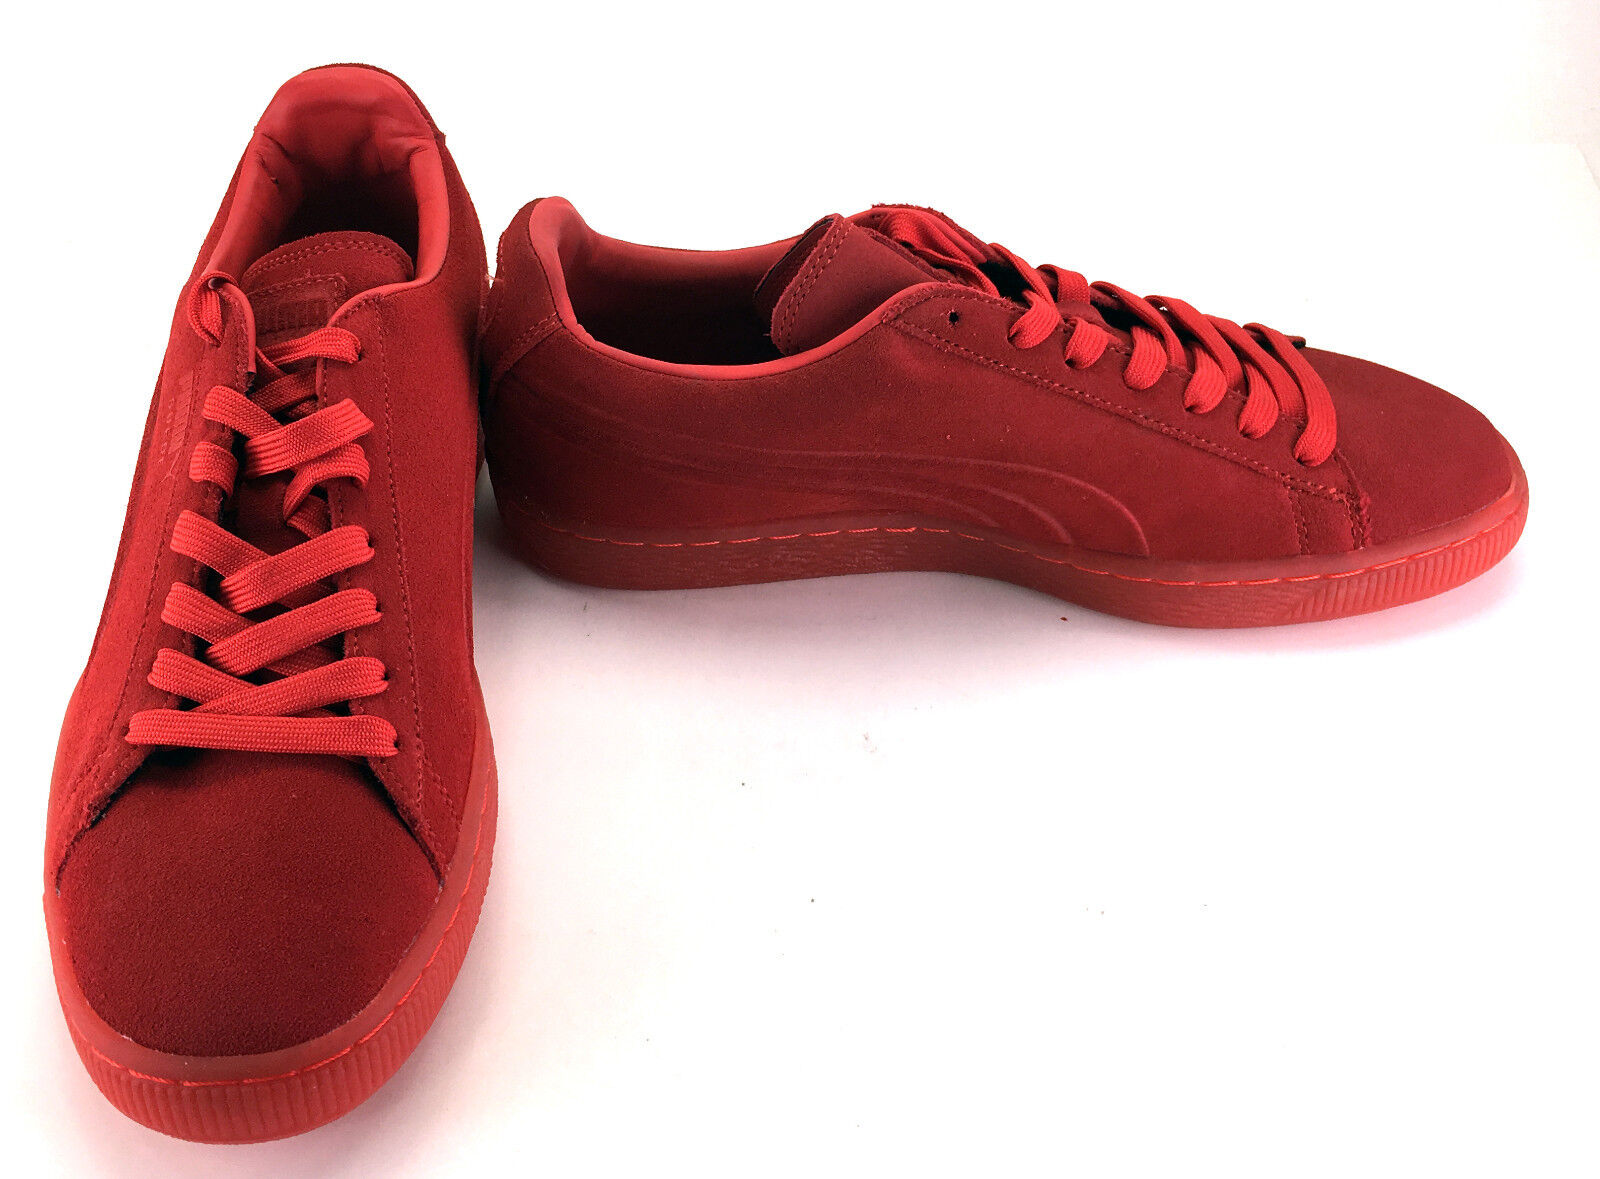 Puma shoes Suede Emboss Iced Red Sneakers Size 9